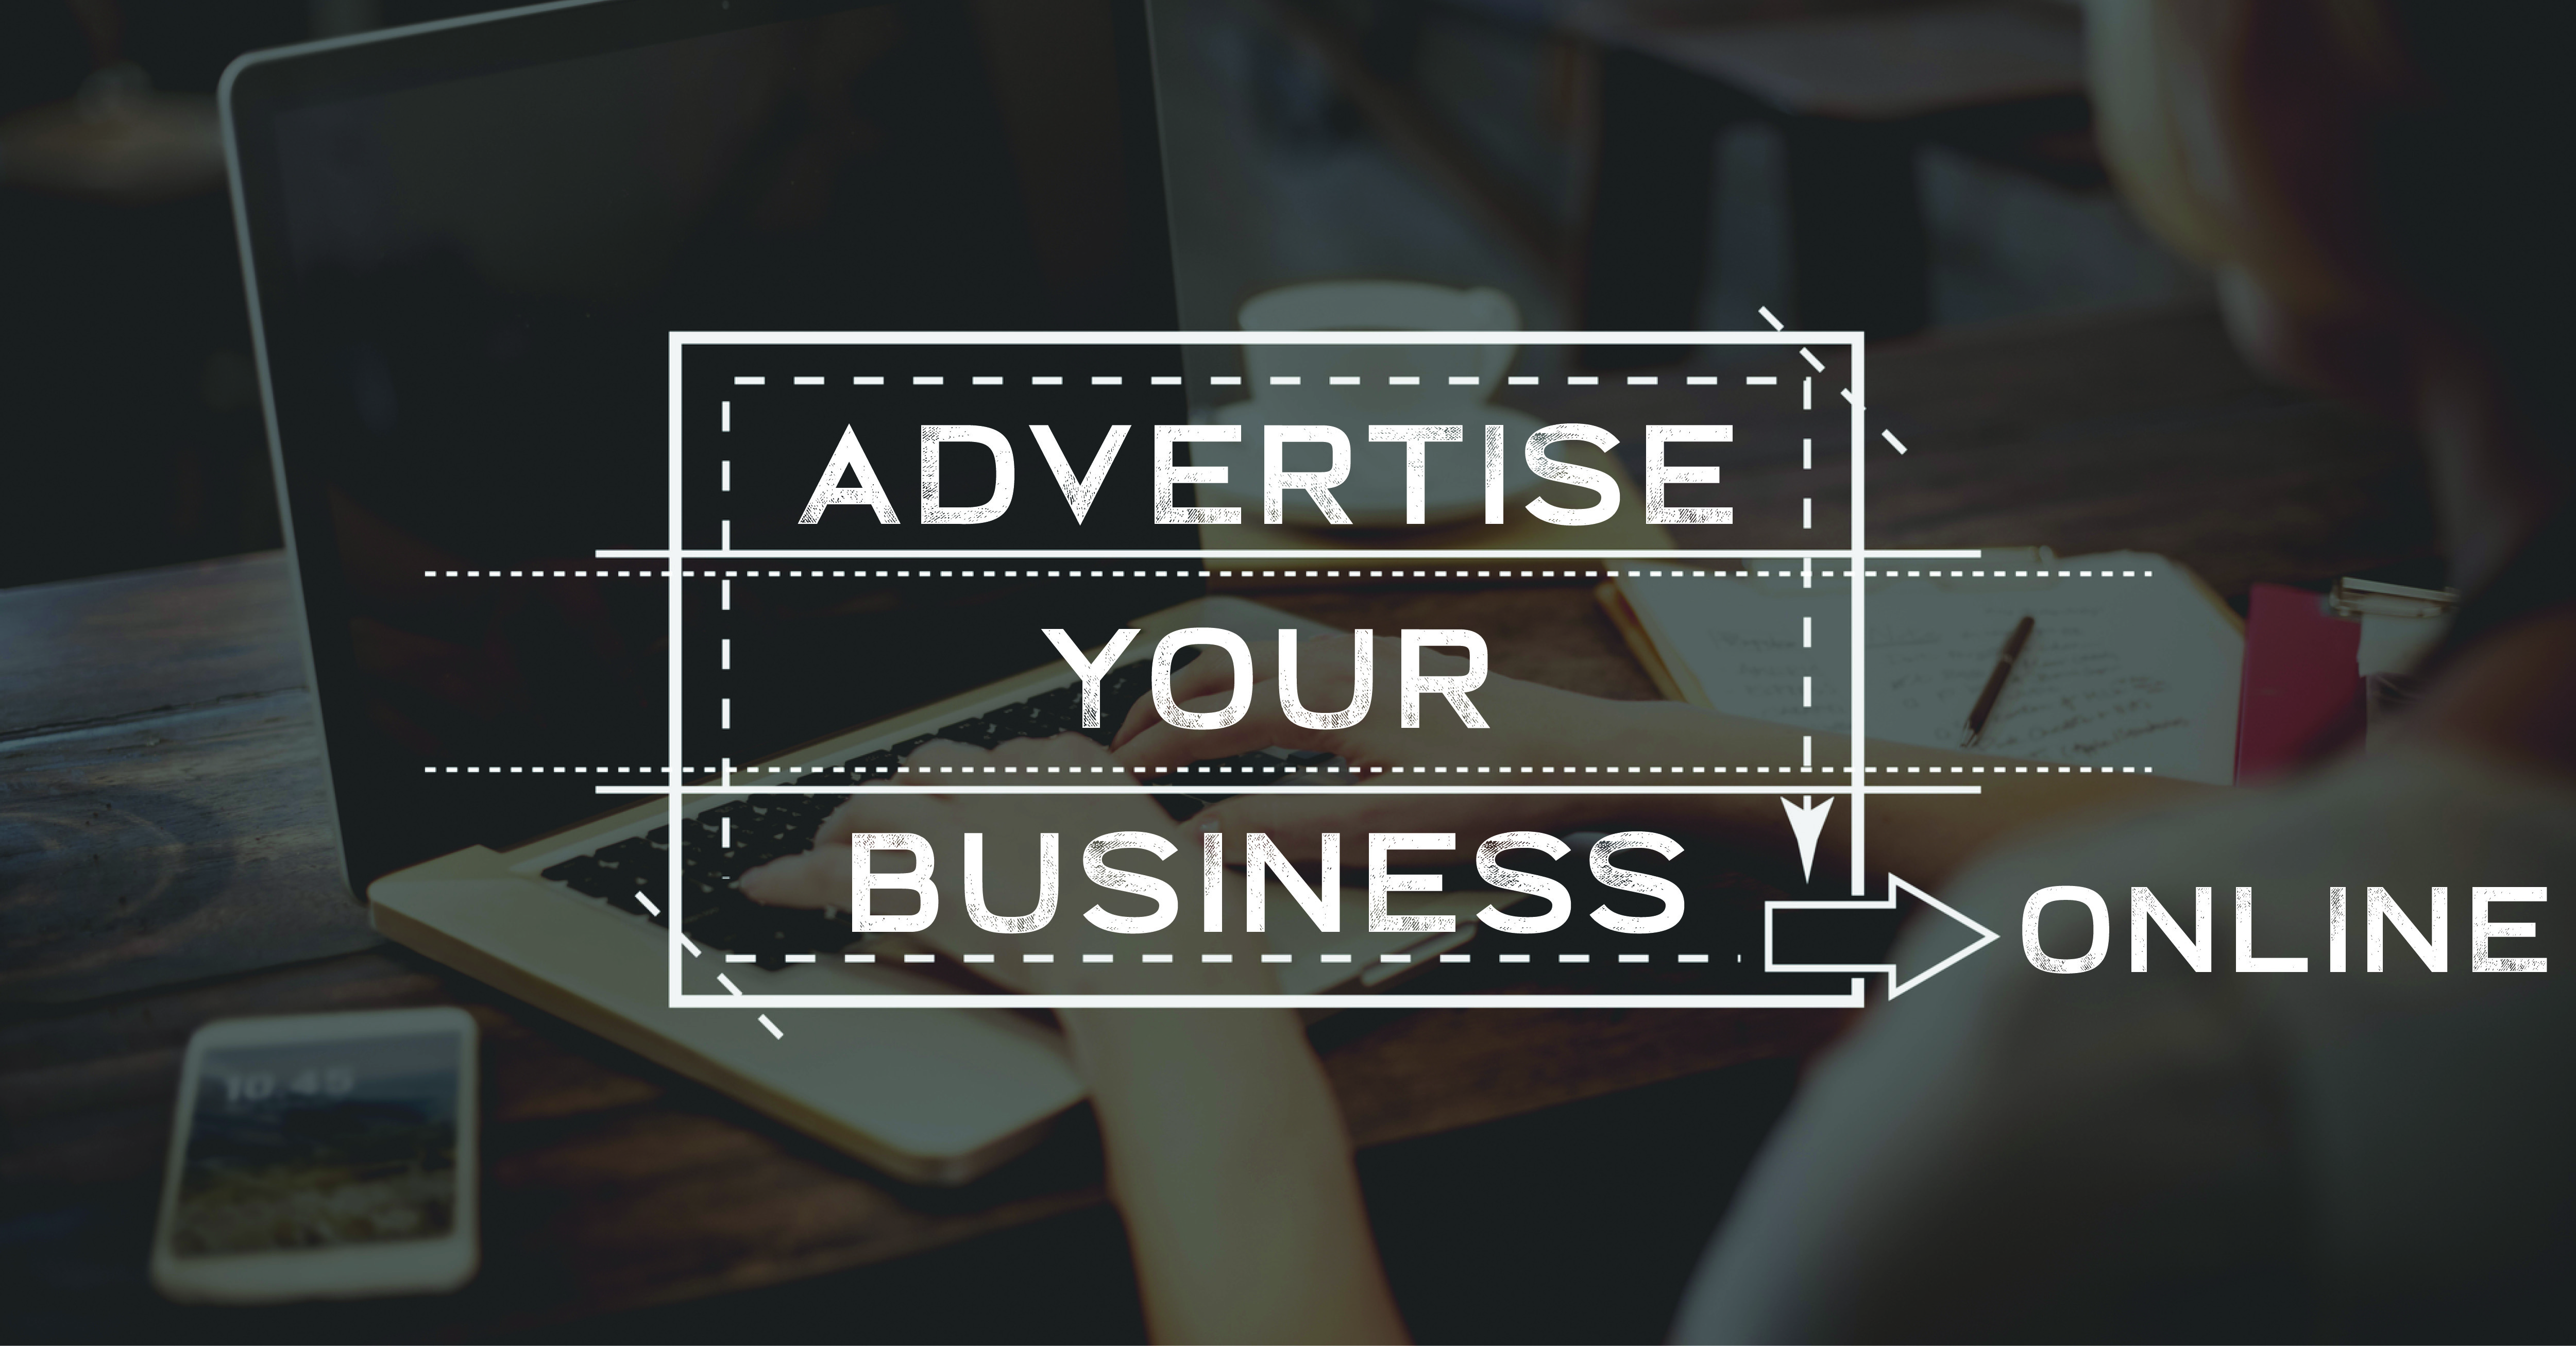 What Are The Best Ways To Advertise Your Business Online?